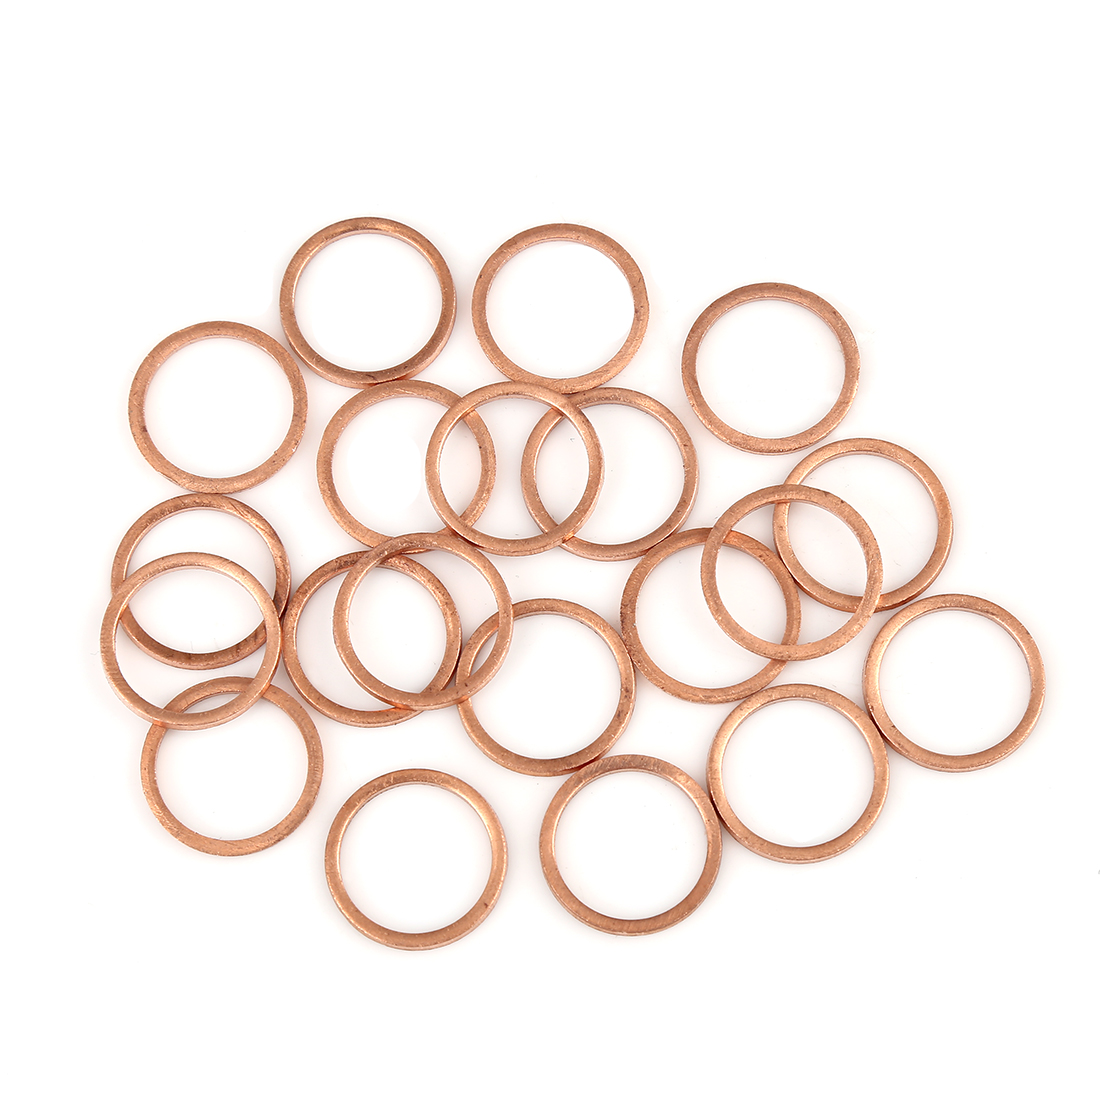 20pcs Copper Washer Flat Sealing Gasket Ring Spacer for Car 15 x 19 x 1.5mm